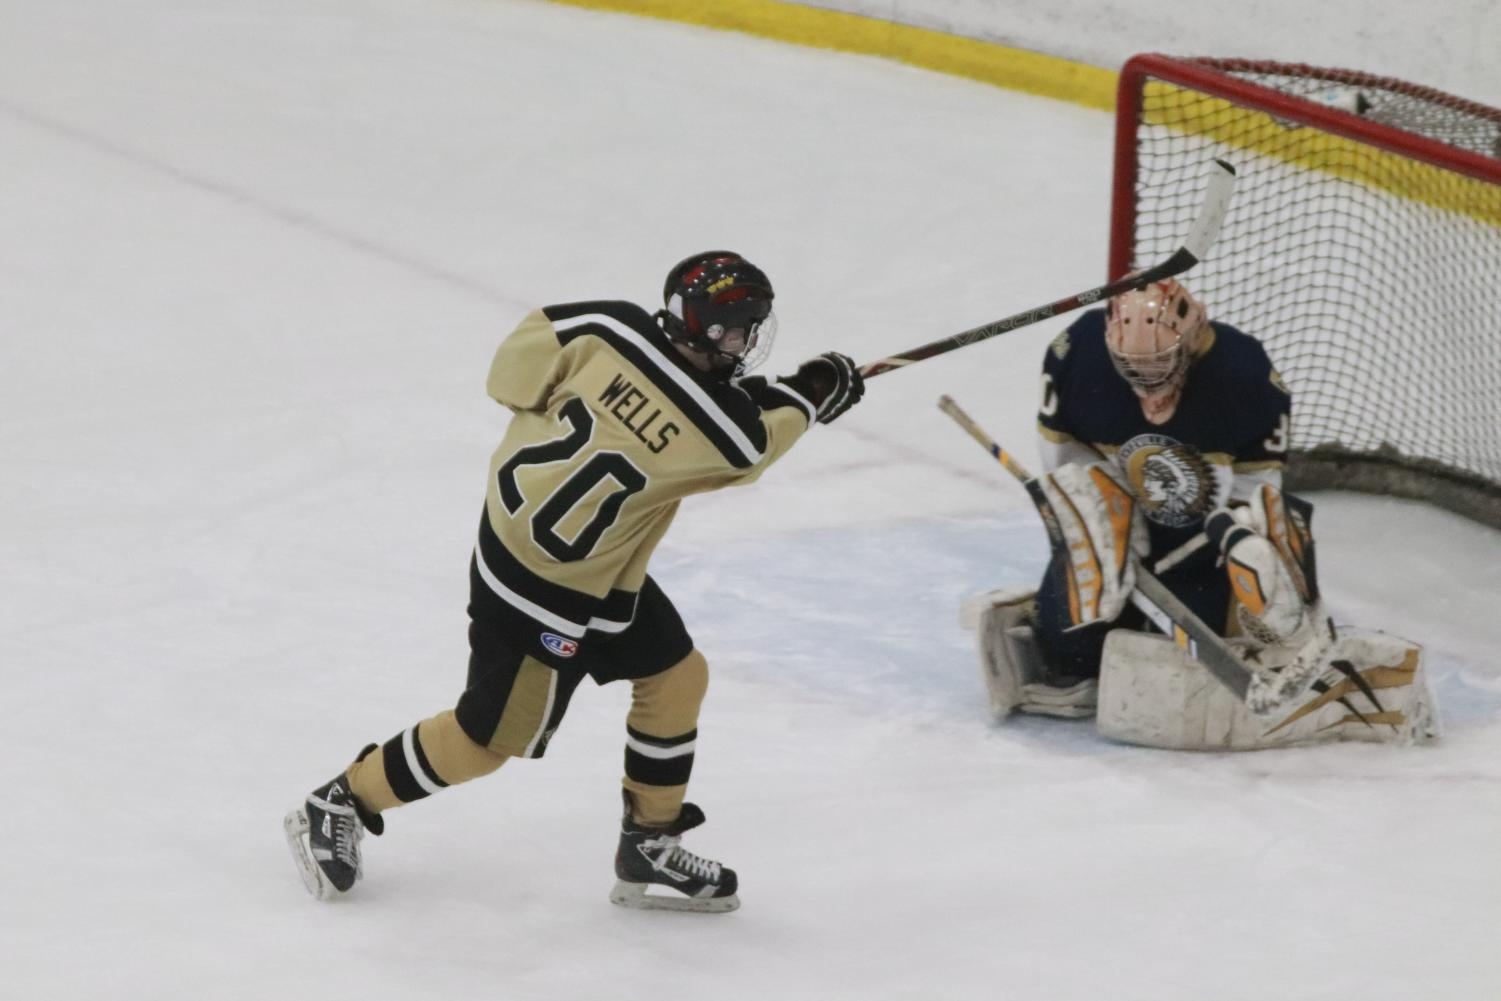 Freshman Matt Wells attempts to score a goal during their game against Holt.